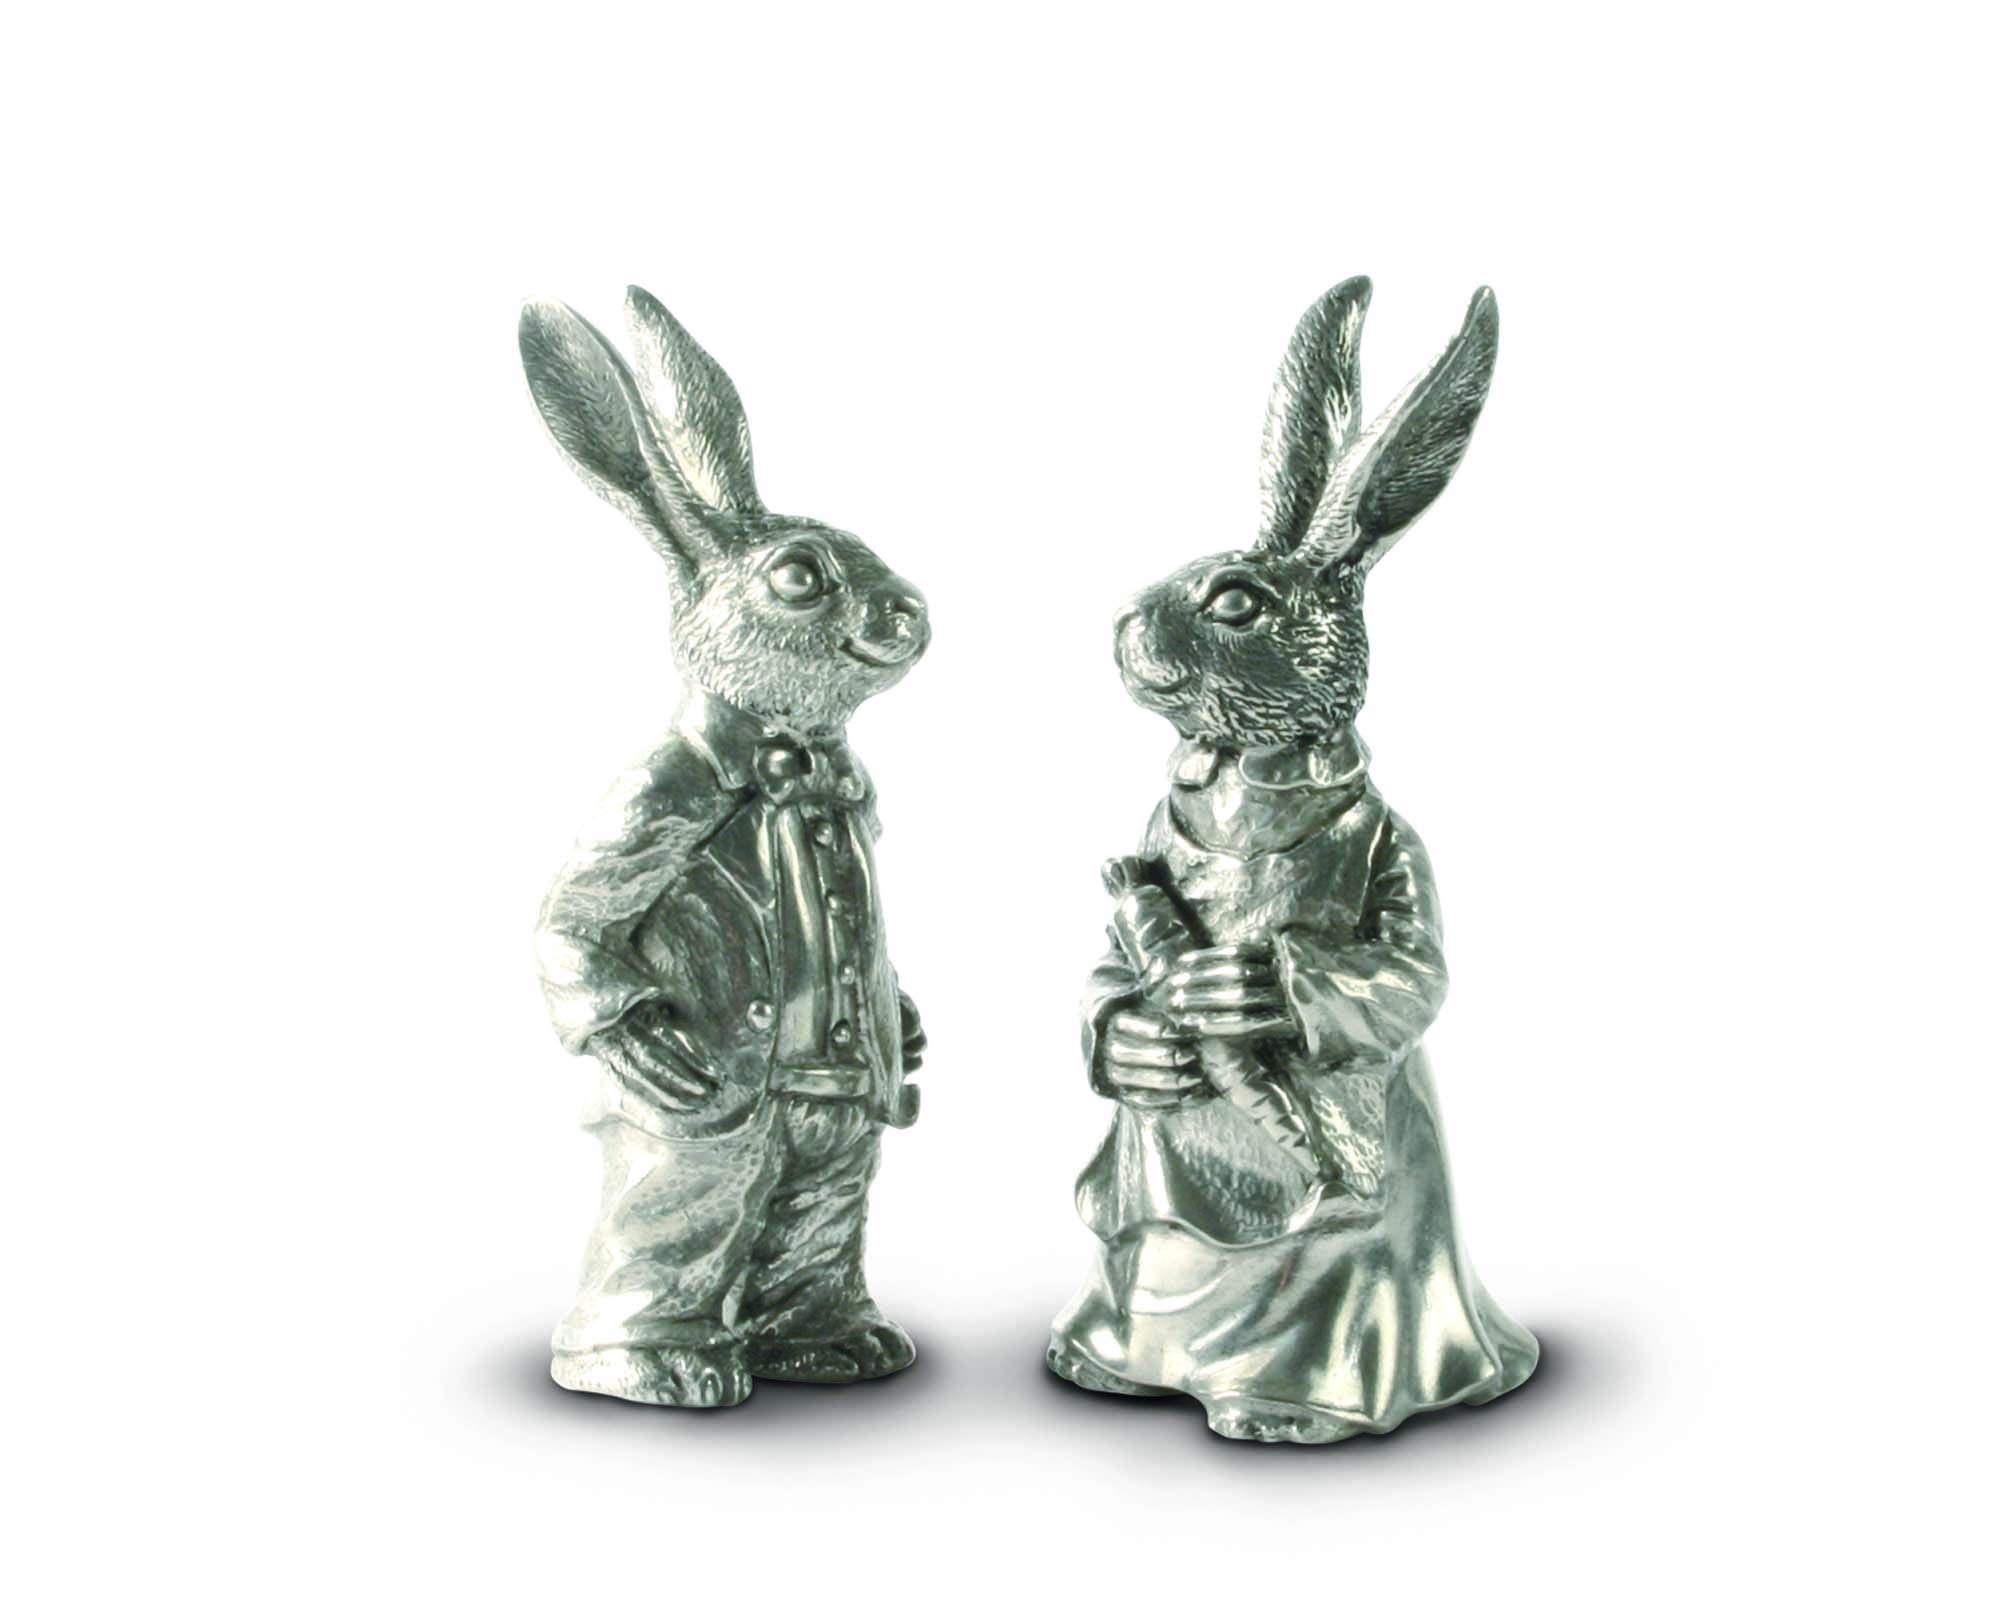 Vagabond House Pewter Metal Cute Dressed Rabbits Bunnies Salt and Pepper Shakers Set - 4'' Tall